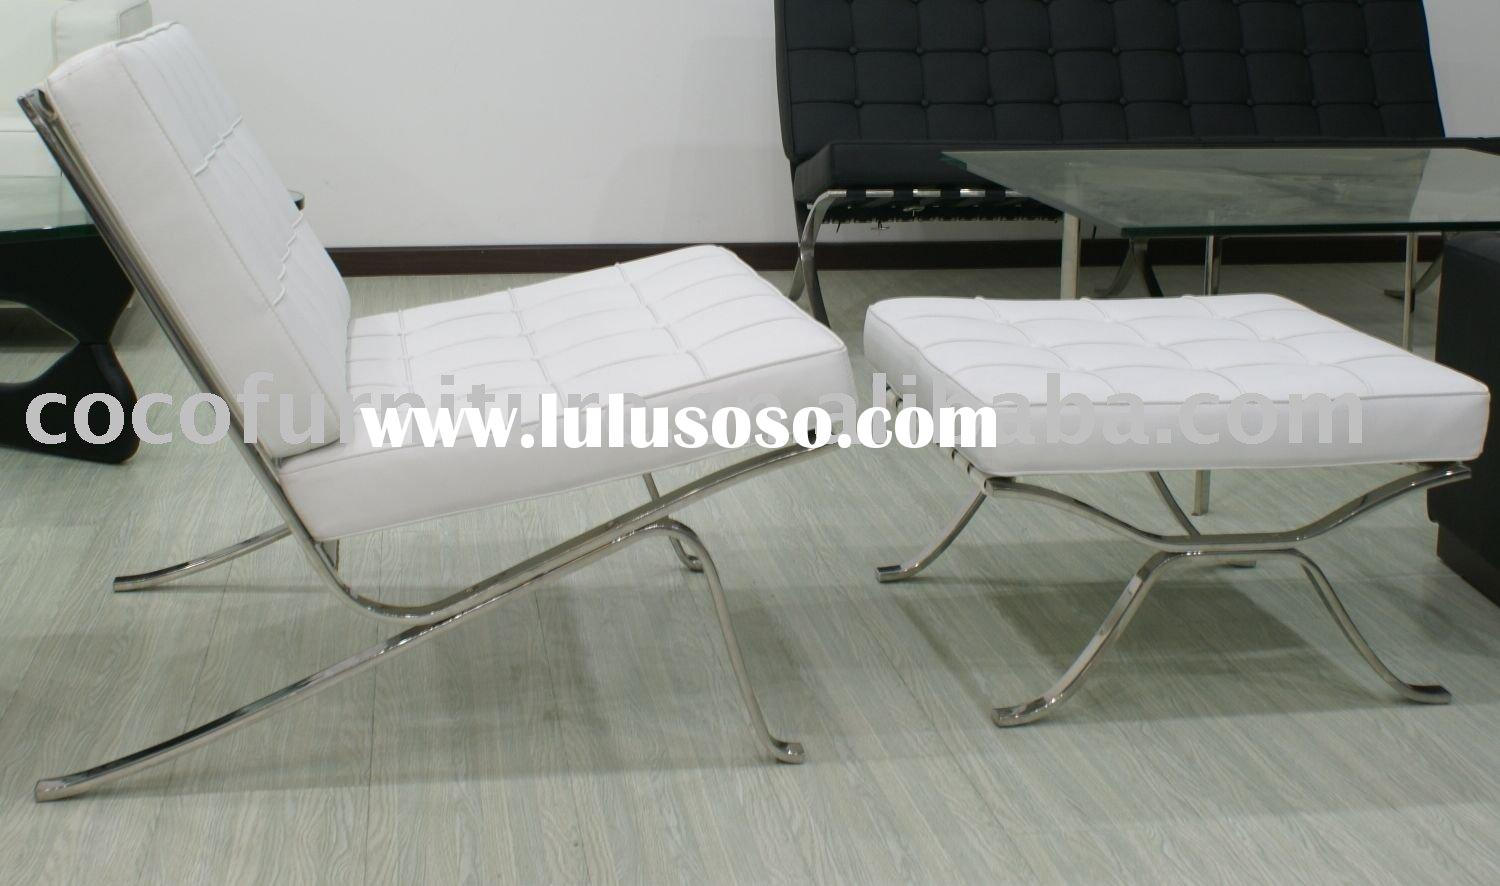 KD Barcelona chair Barcelona chair Barcelona day bed Charles Eames chair and Eames soft pad alum off